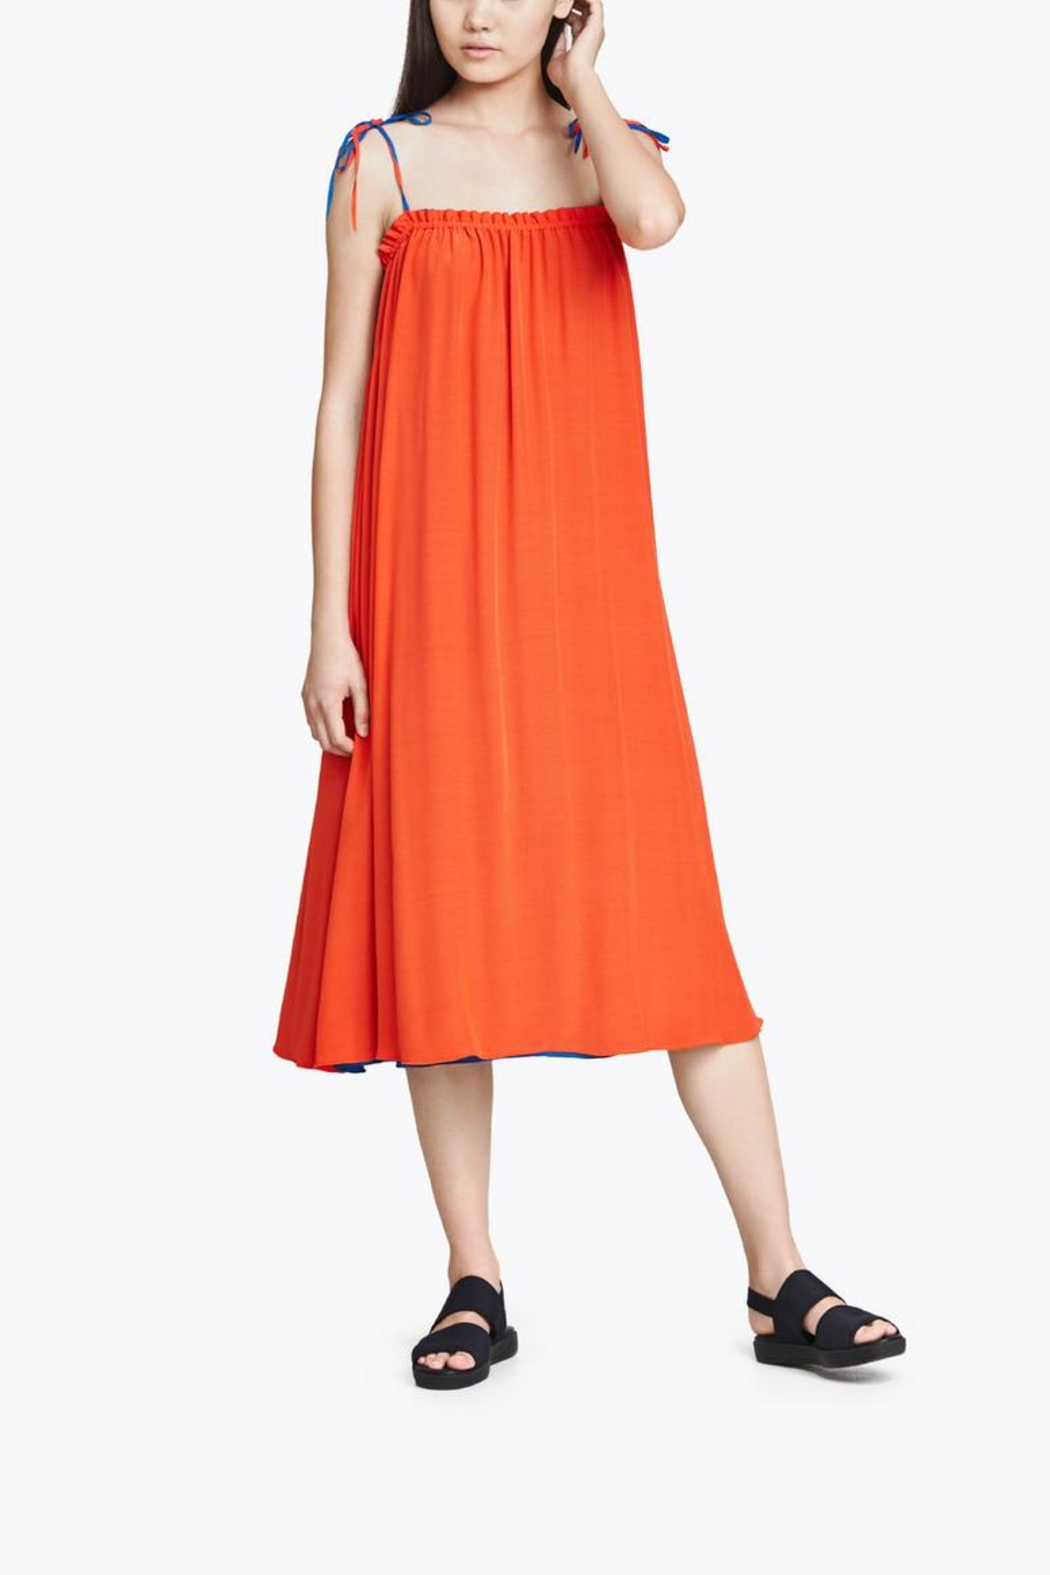 CYRILLE GASSILINE Shara Reversible Dress - Back Cropped Image